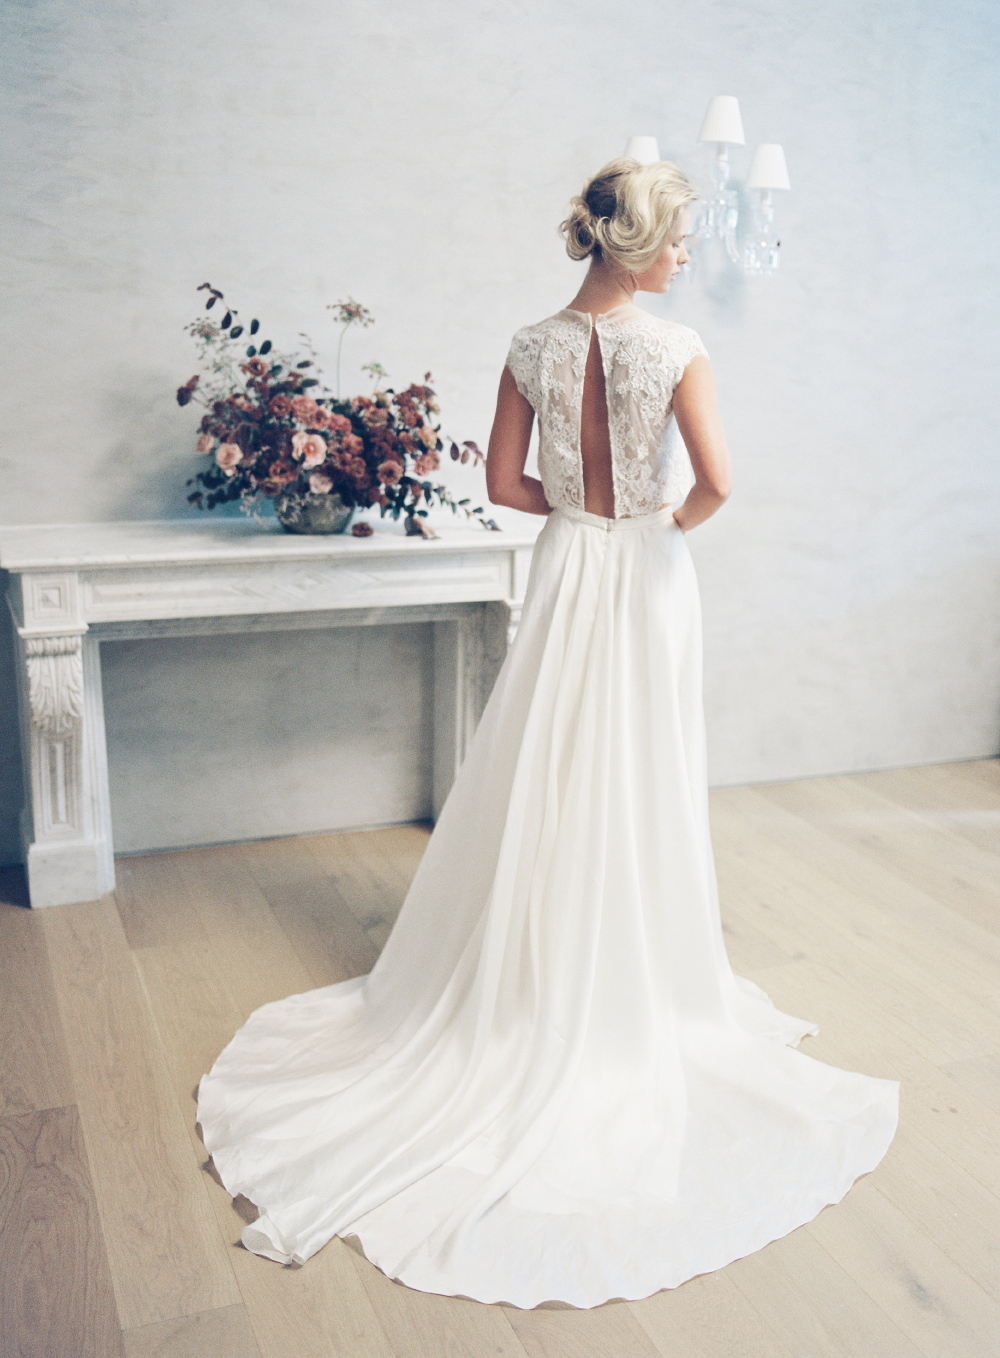 Oriana bridal gown by Tanya Anic